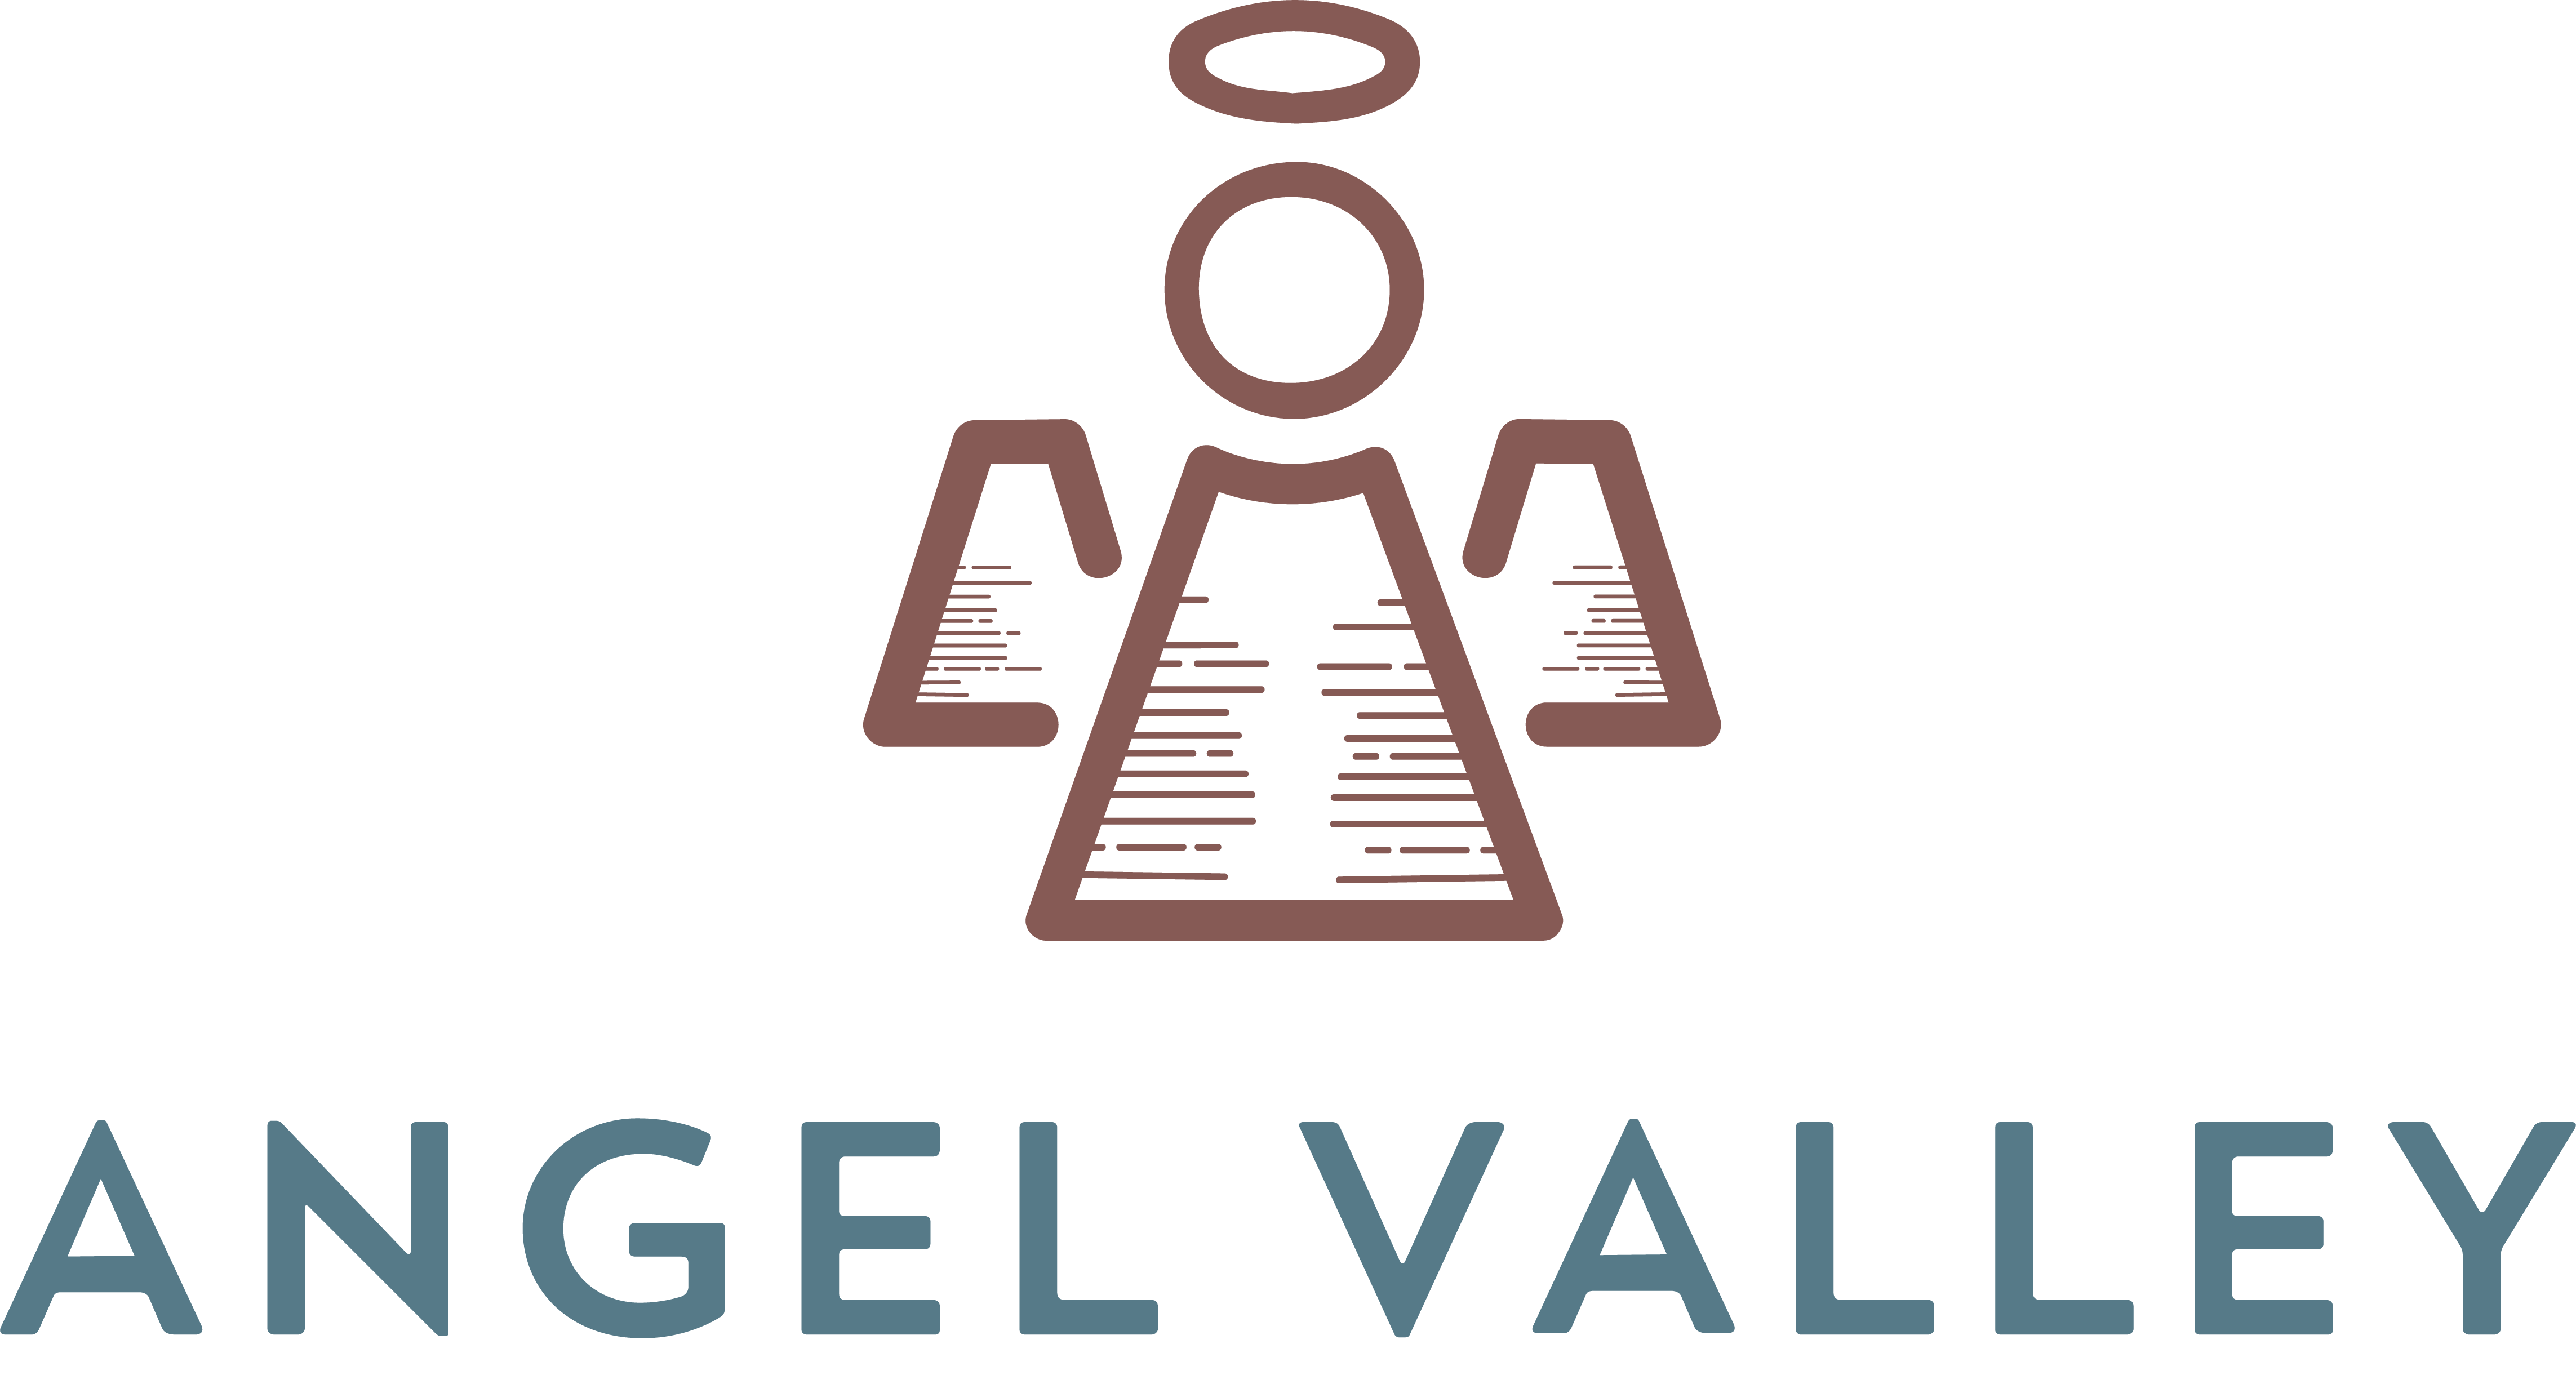 http://rootsandroads.org/wp-content/uploads/2021/03/Angel-Valley-Logo-Stacked-Edit.png